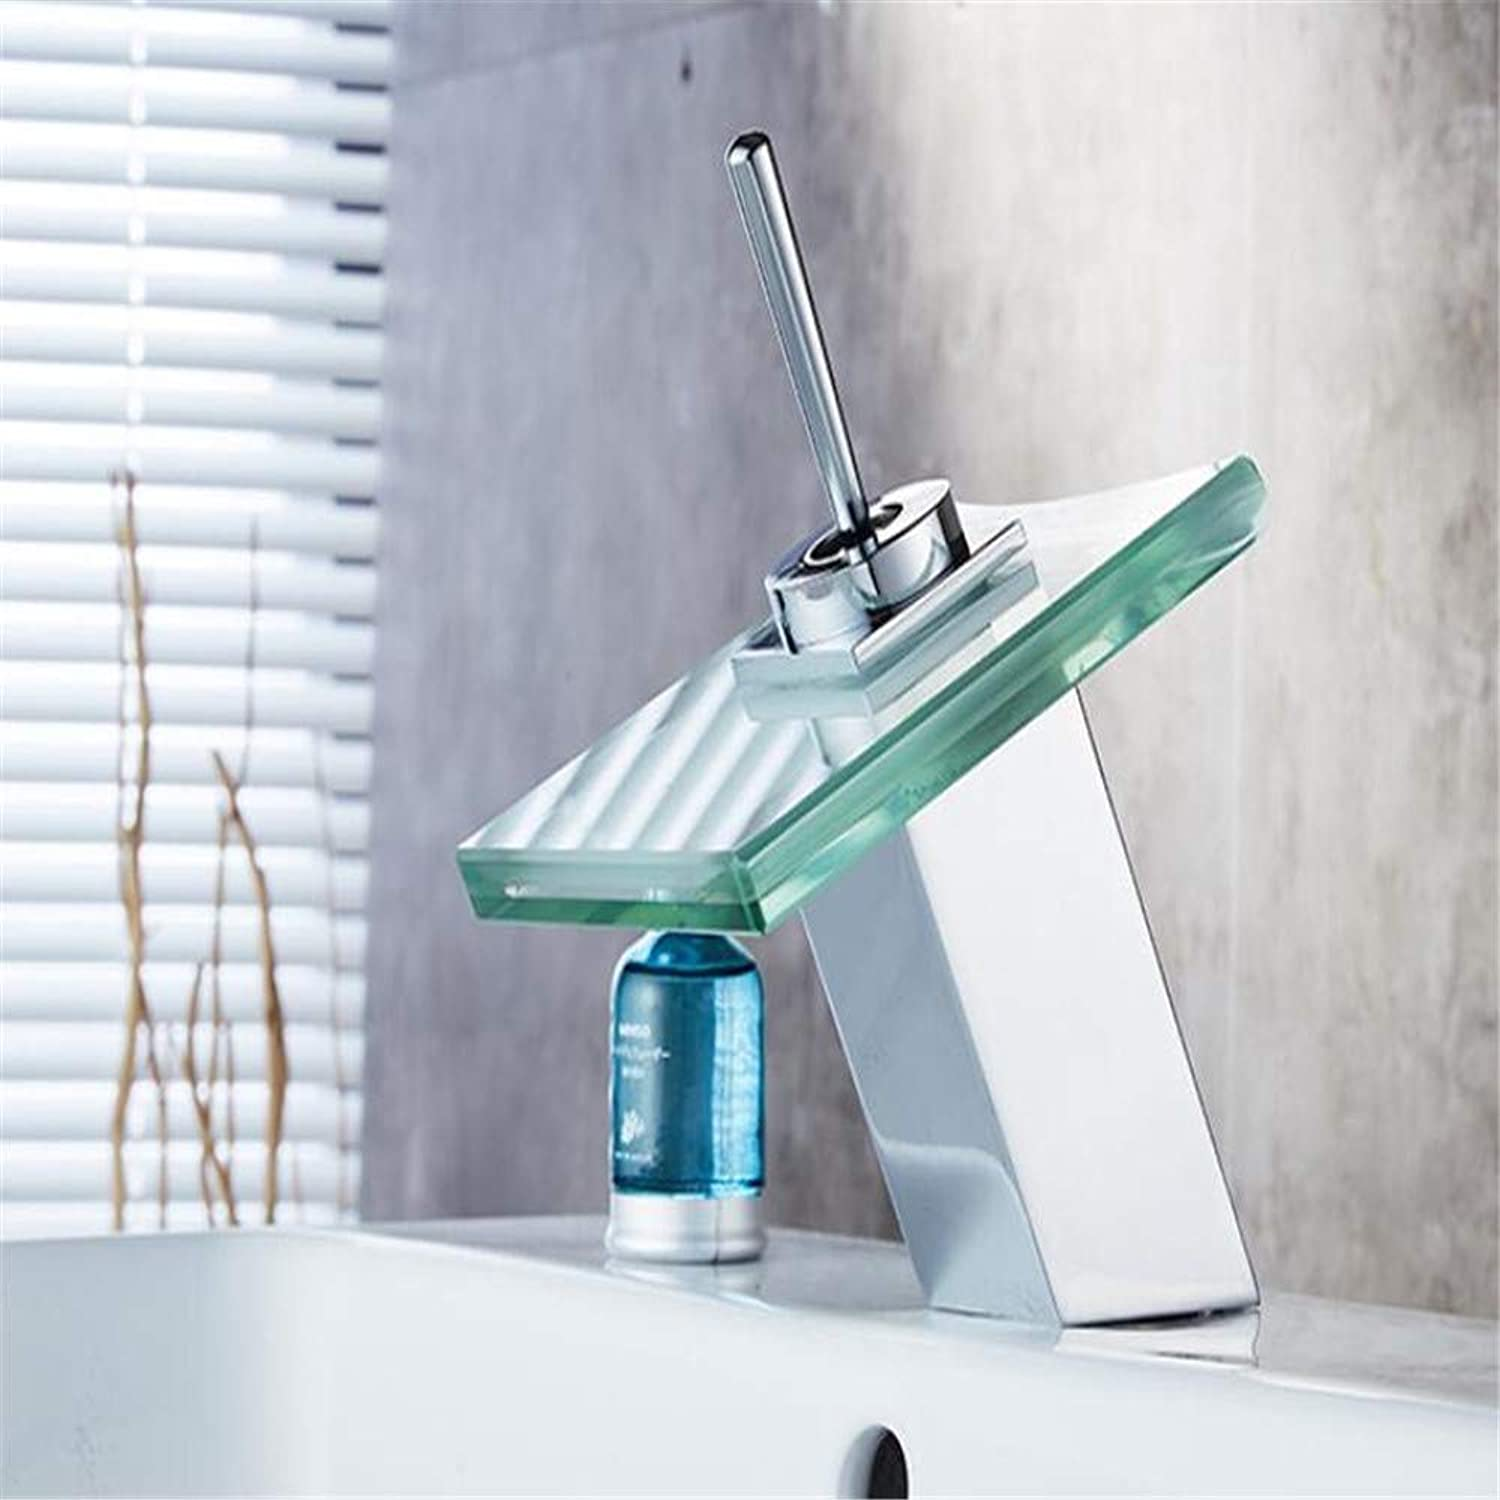 Faucetbasin Mixer Tap Bathroom Basin Hot Cold Hot Water Faucet Glass Waterfall Faucet.